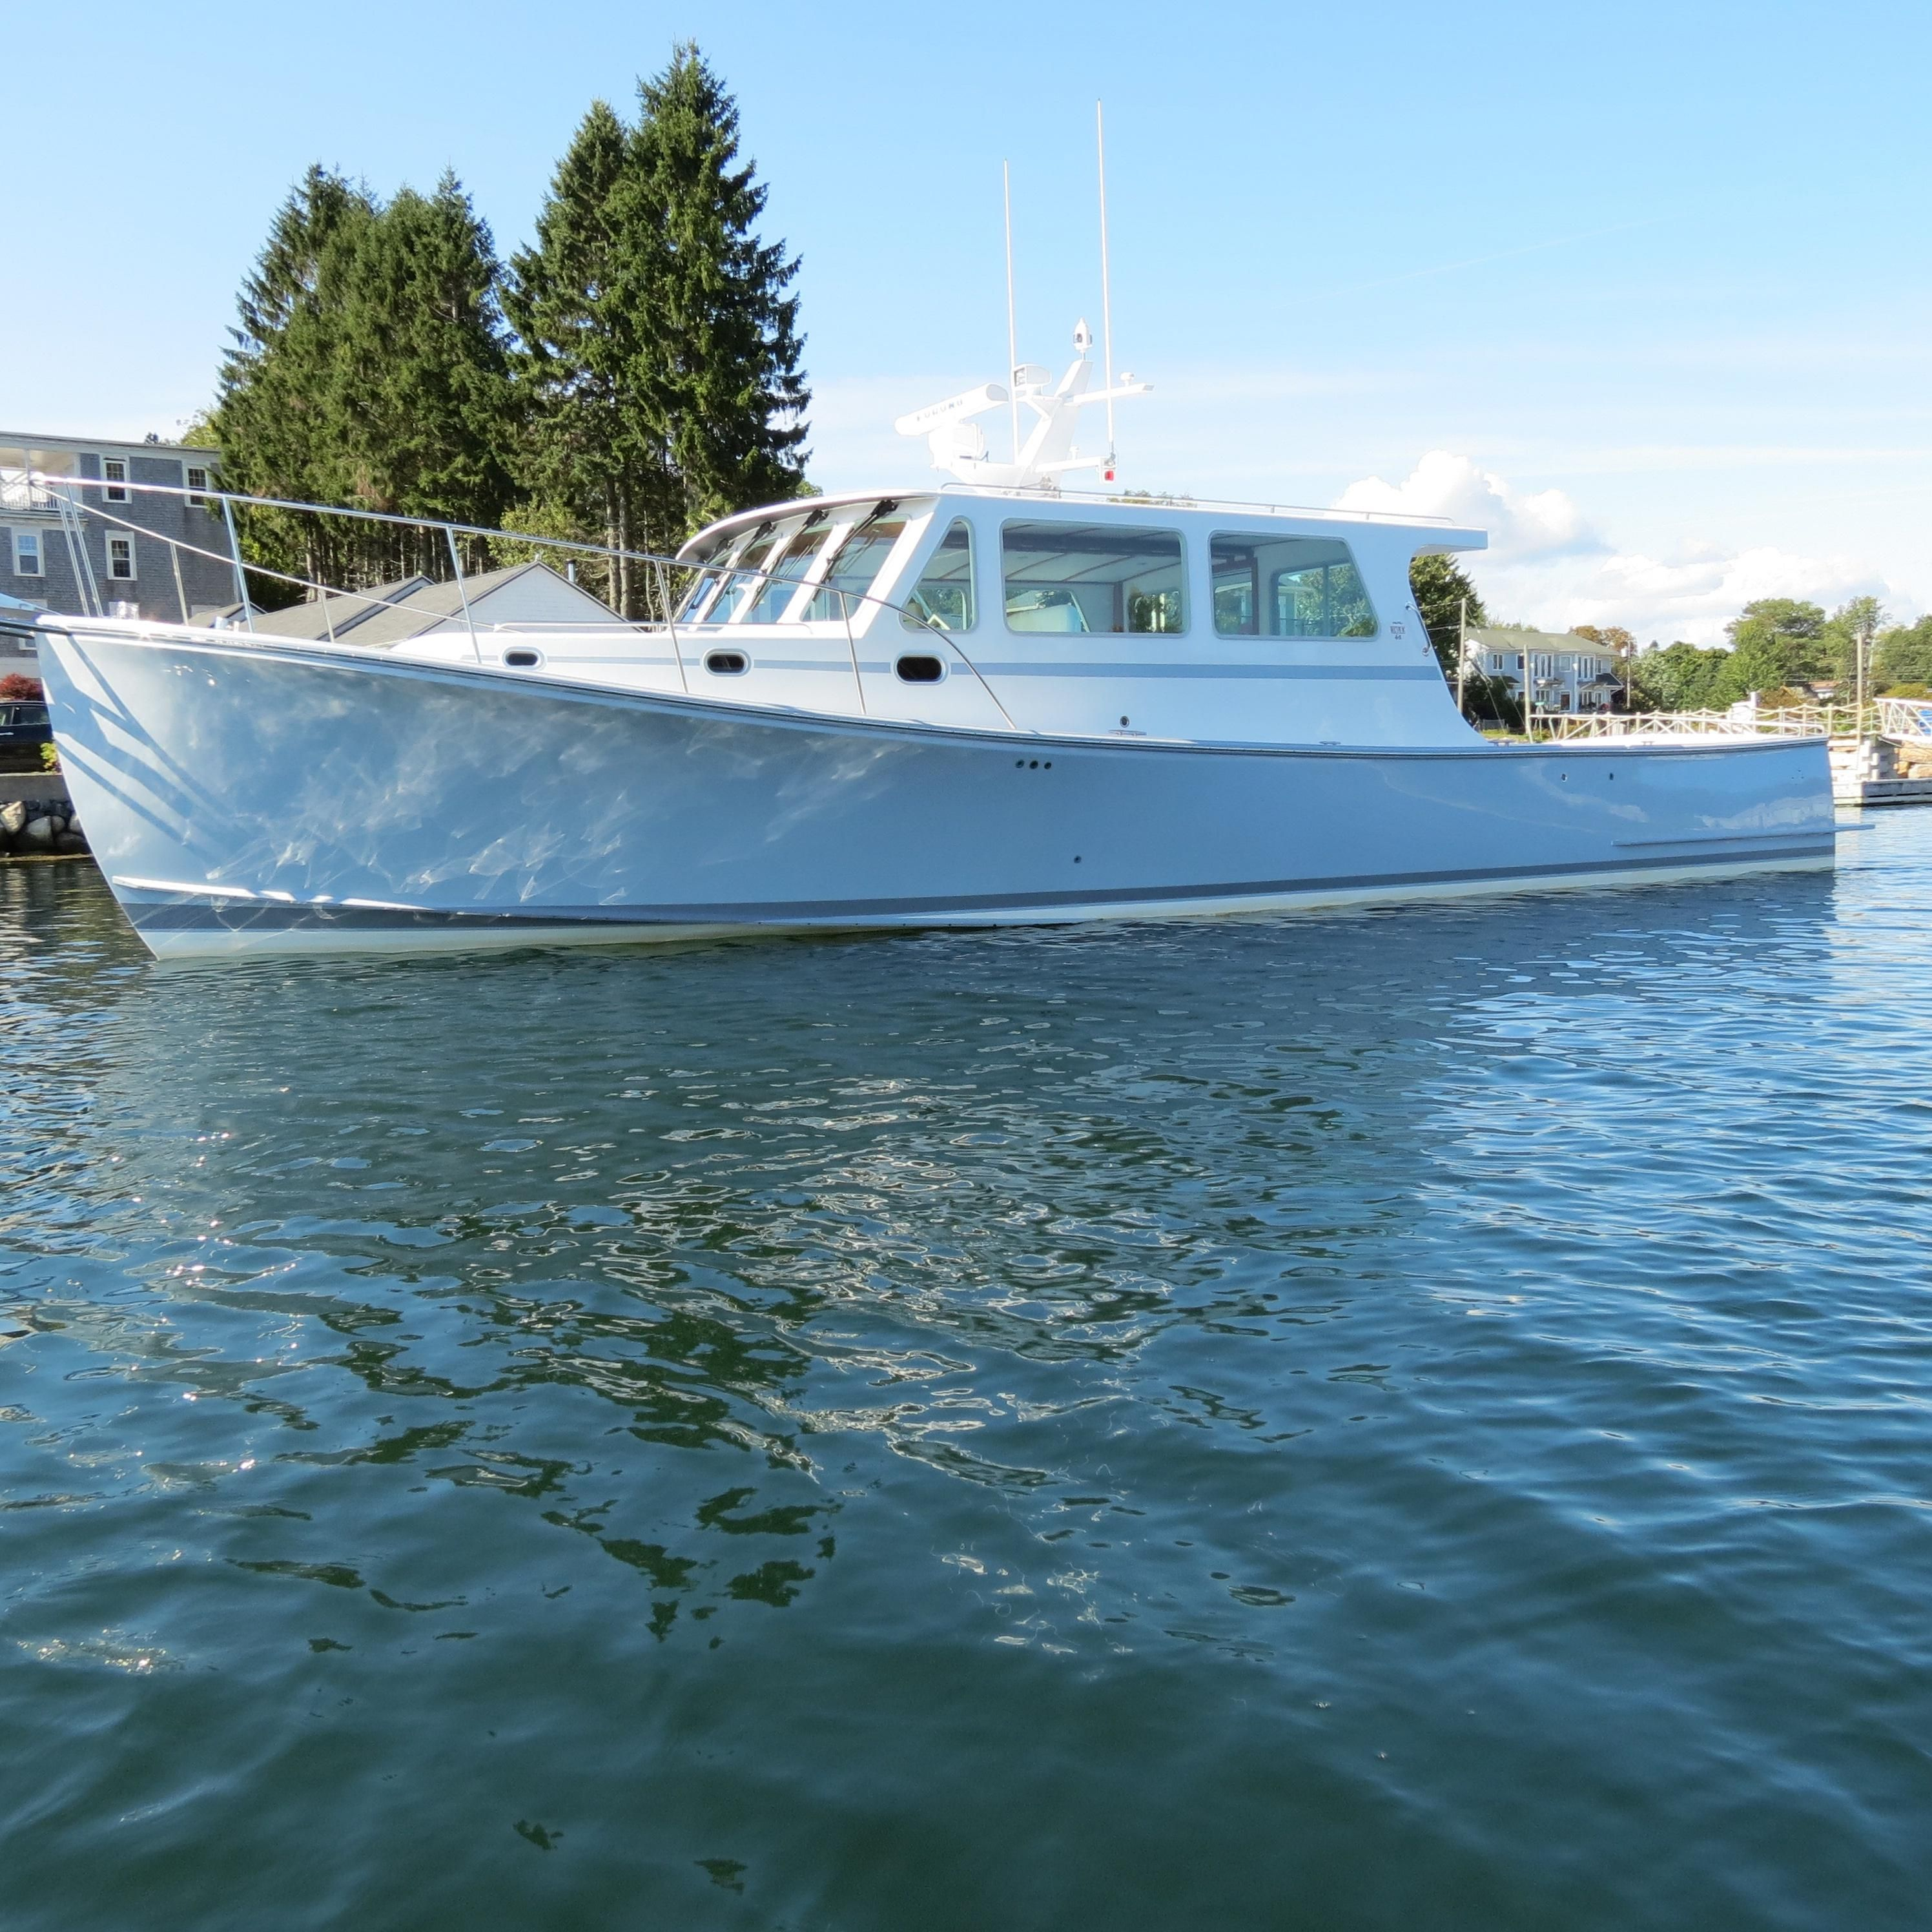 2018 Wesmac Sedan Cruiser Power New And Used Boats For Sale